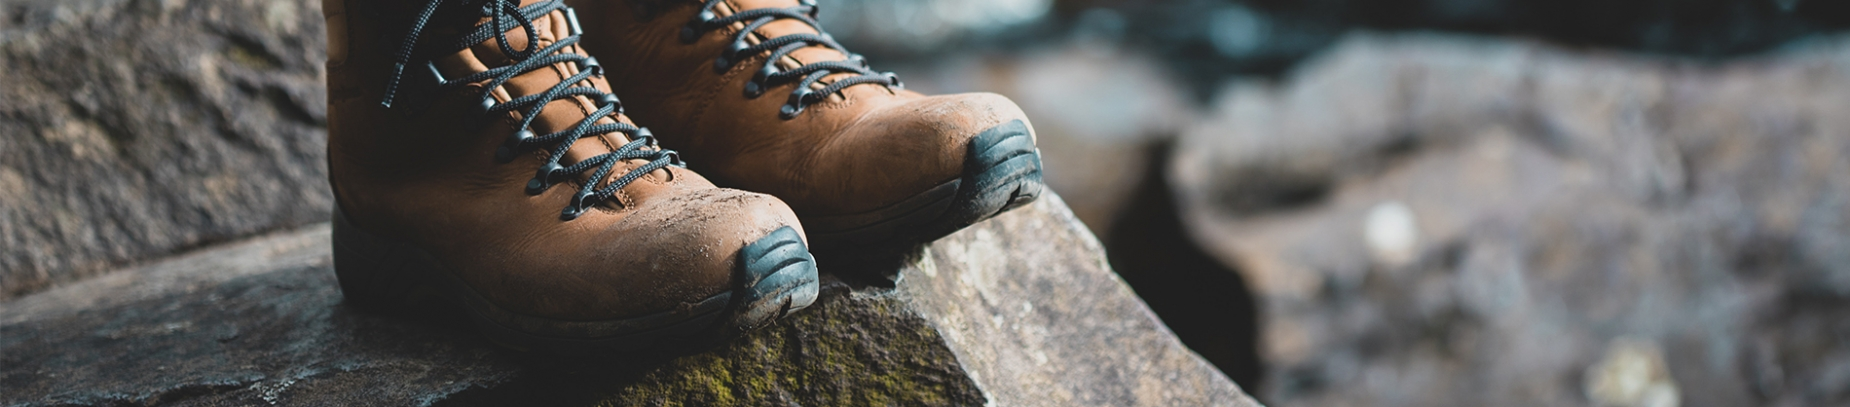 Walking boots on a rock